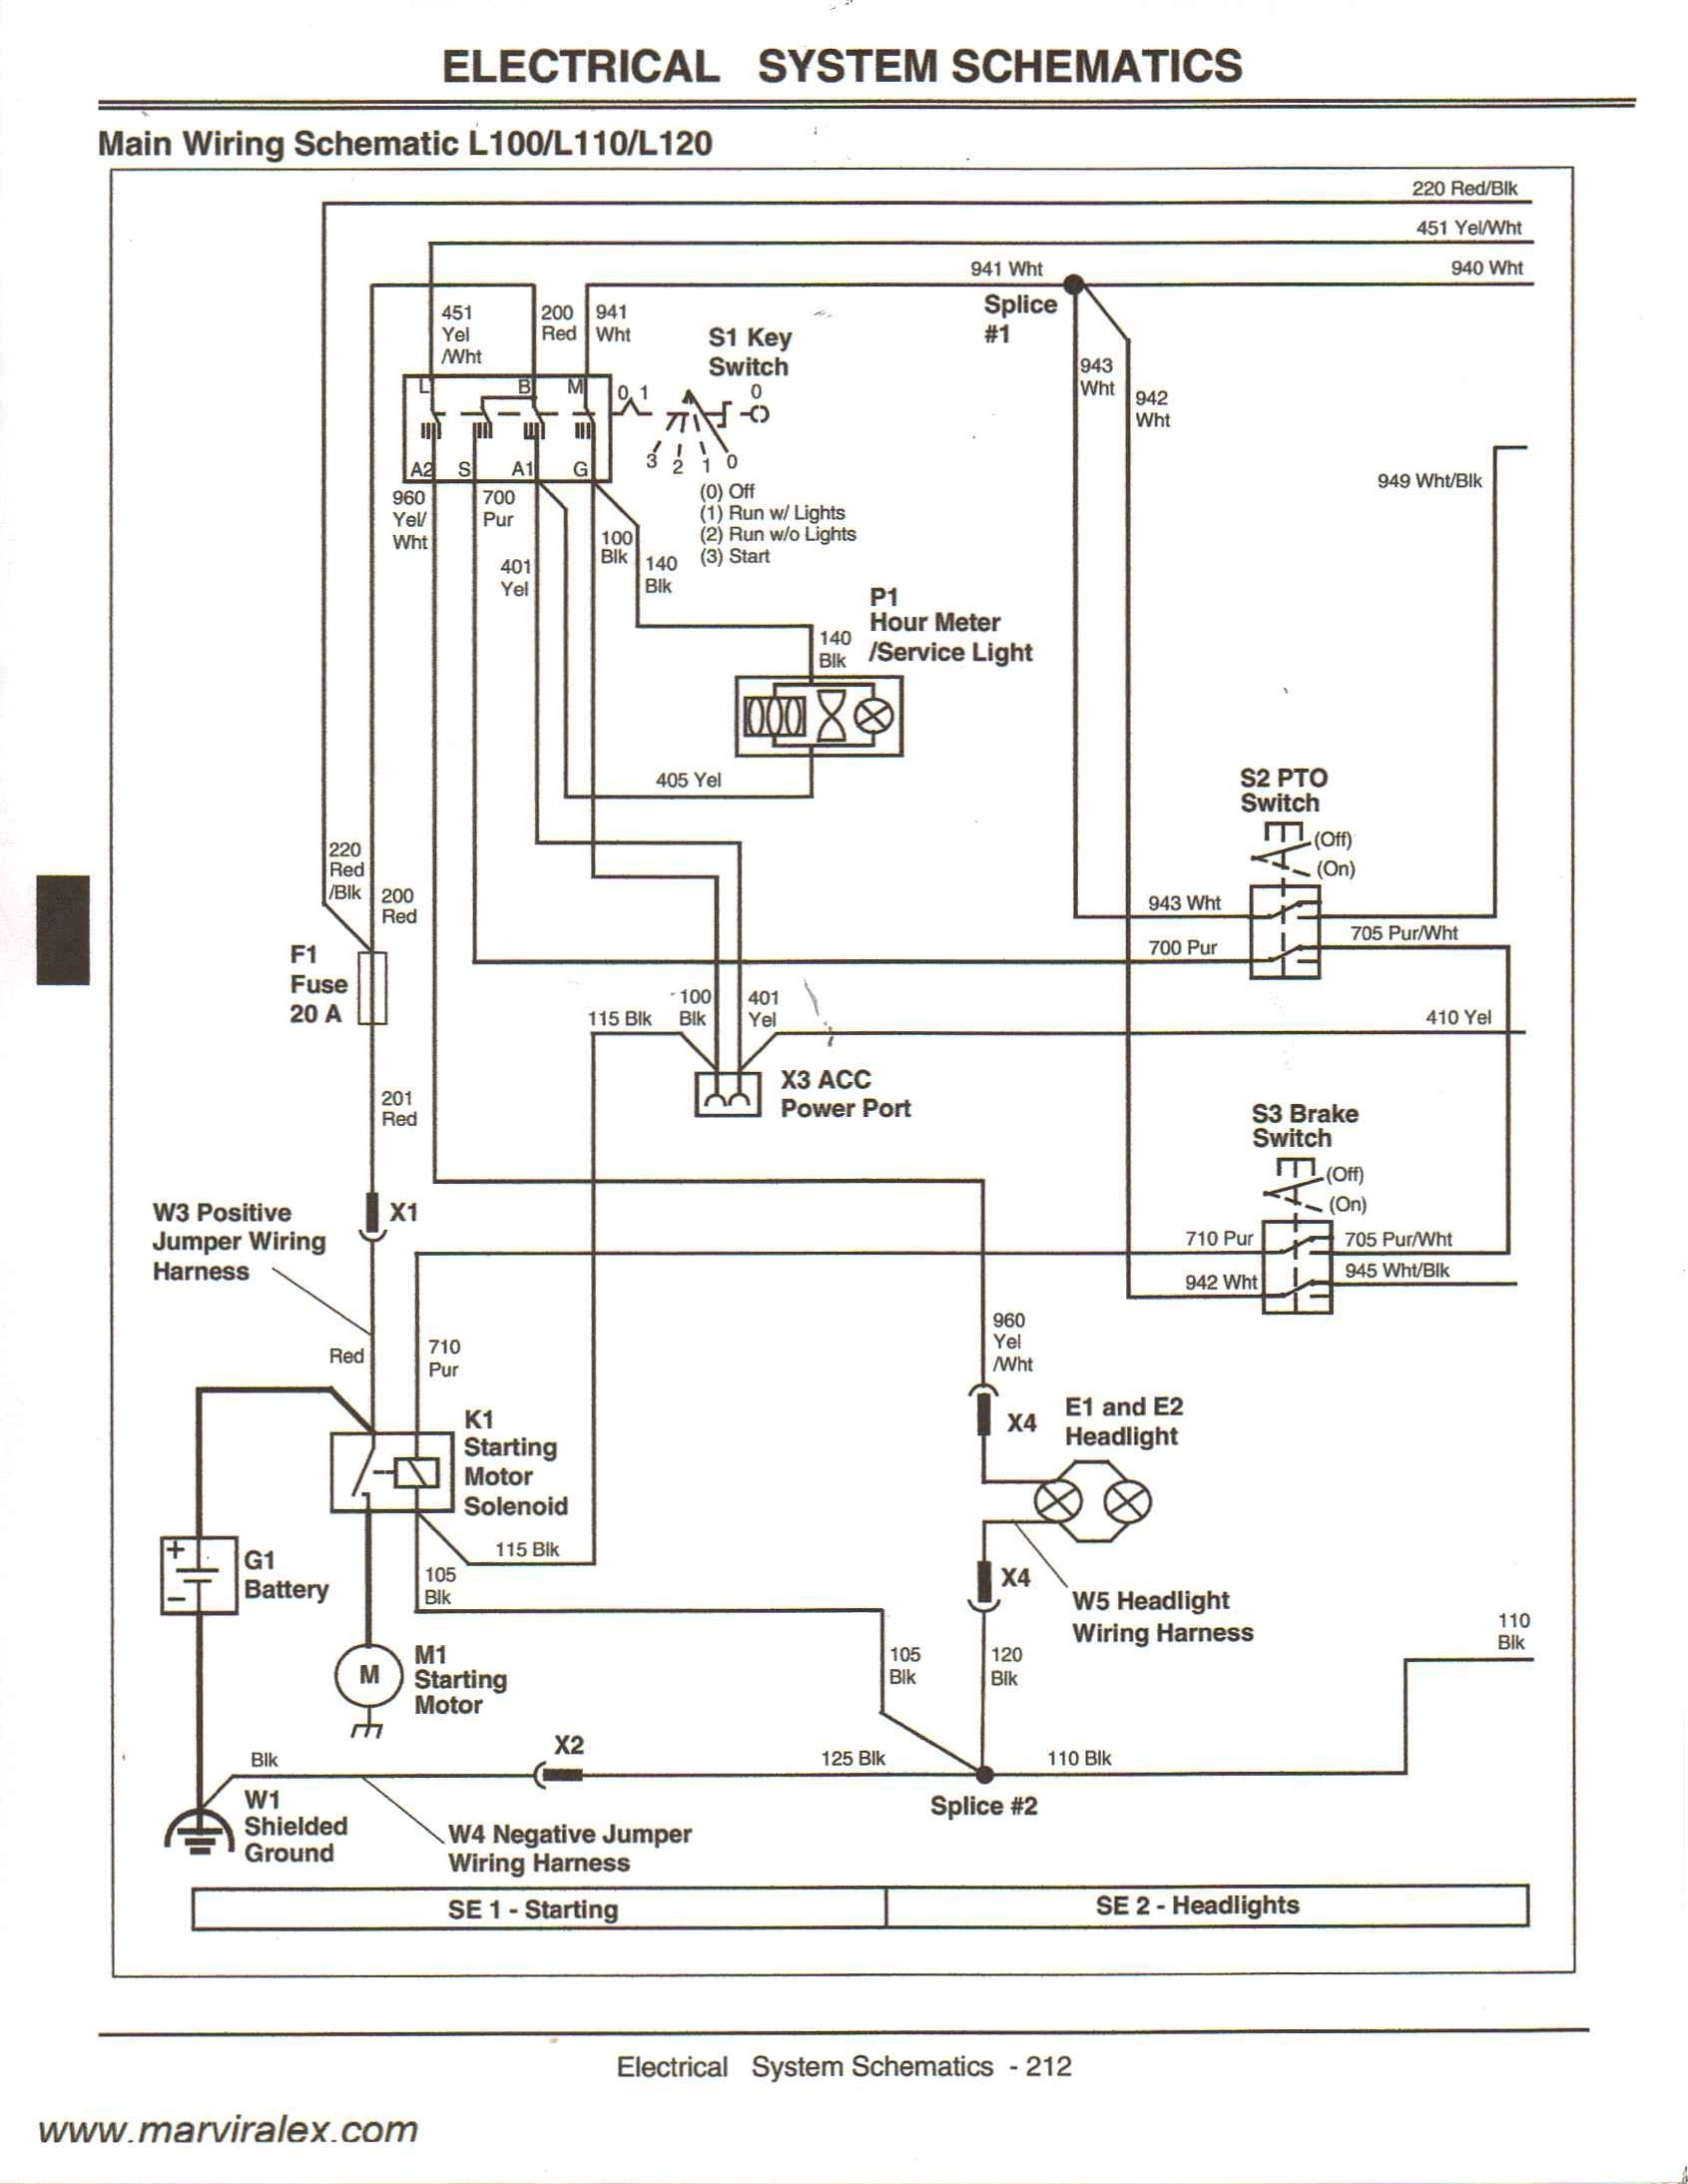 john deere 5101 wiring diagrams john deere tractor wiring diagrams john deere gator ignition switch wiring diagram | free wiring diagram #10